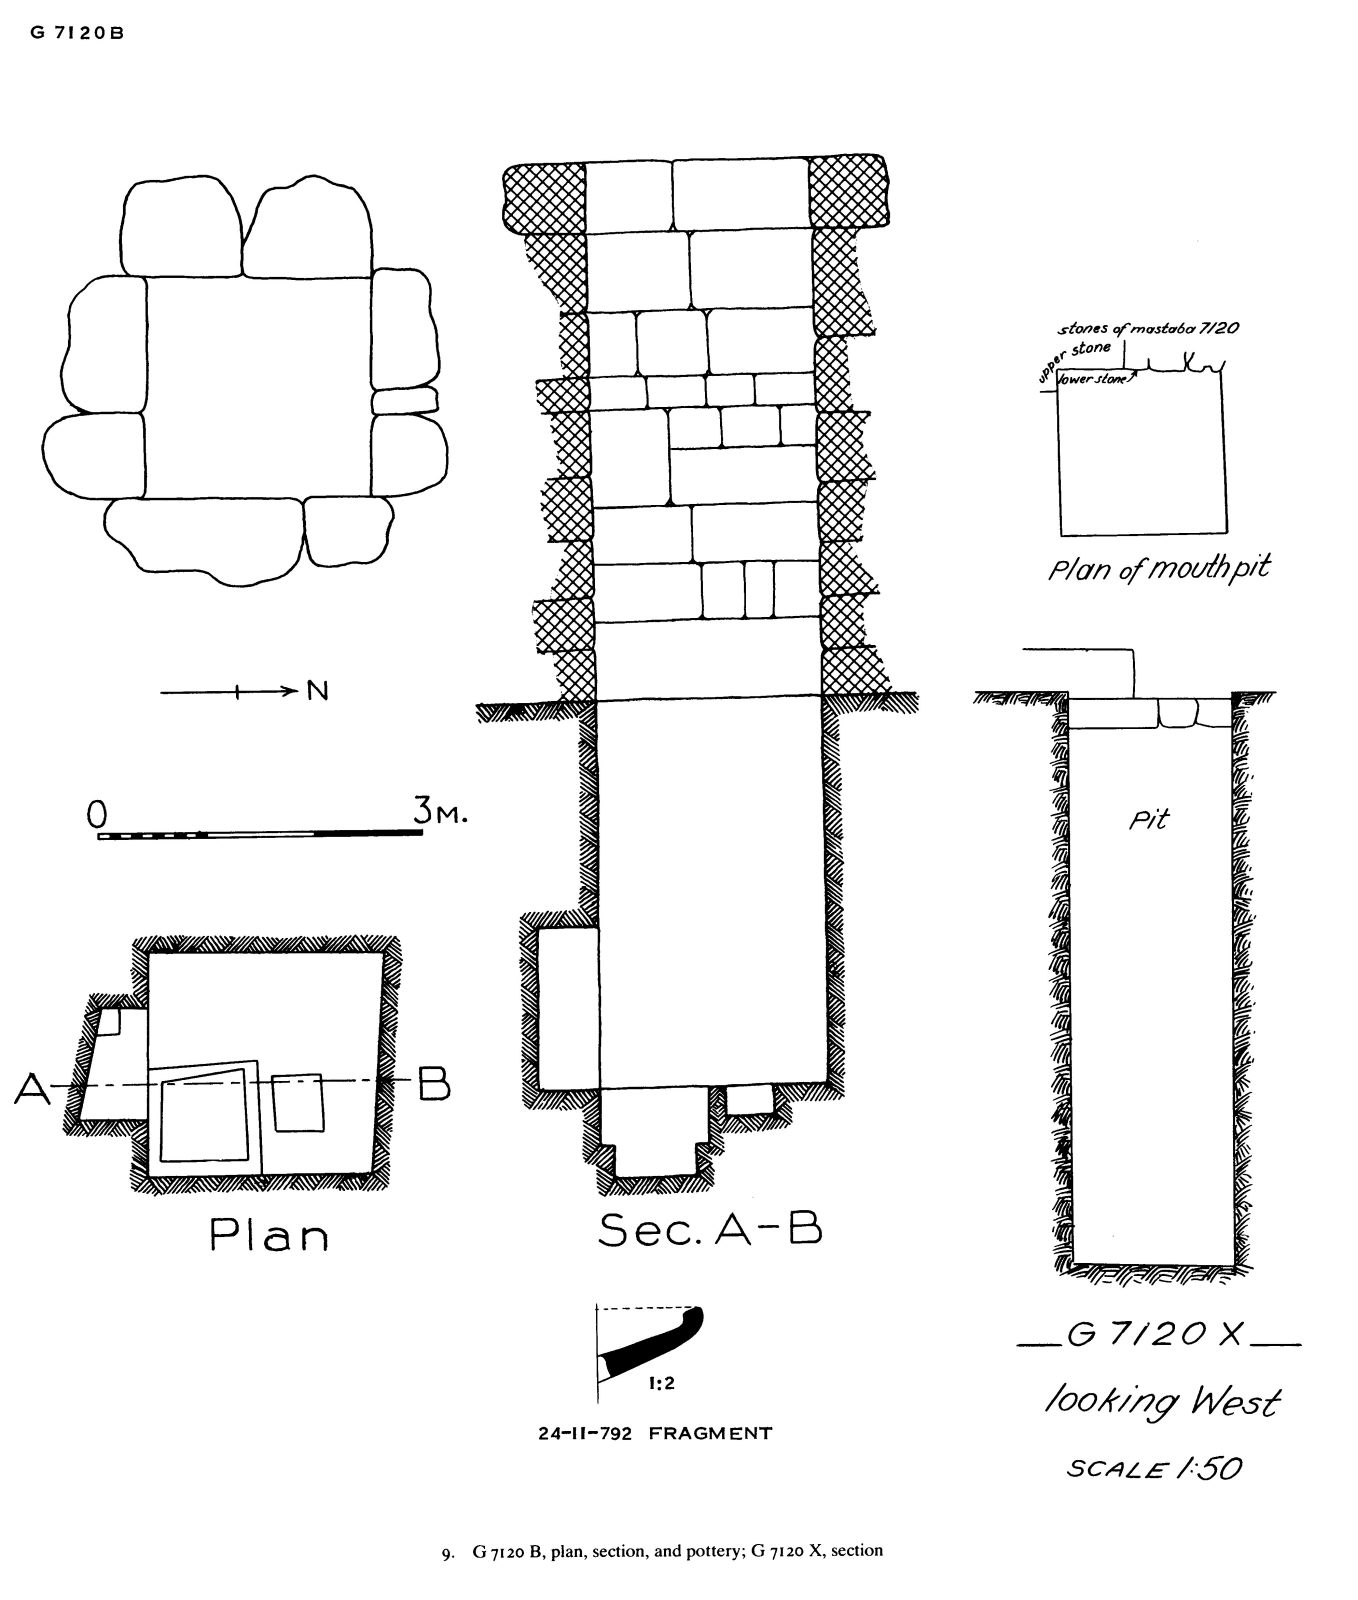 Maps and plans: G 7120, Shaft B, G, X